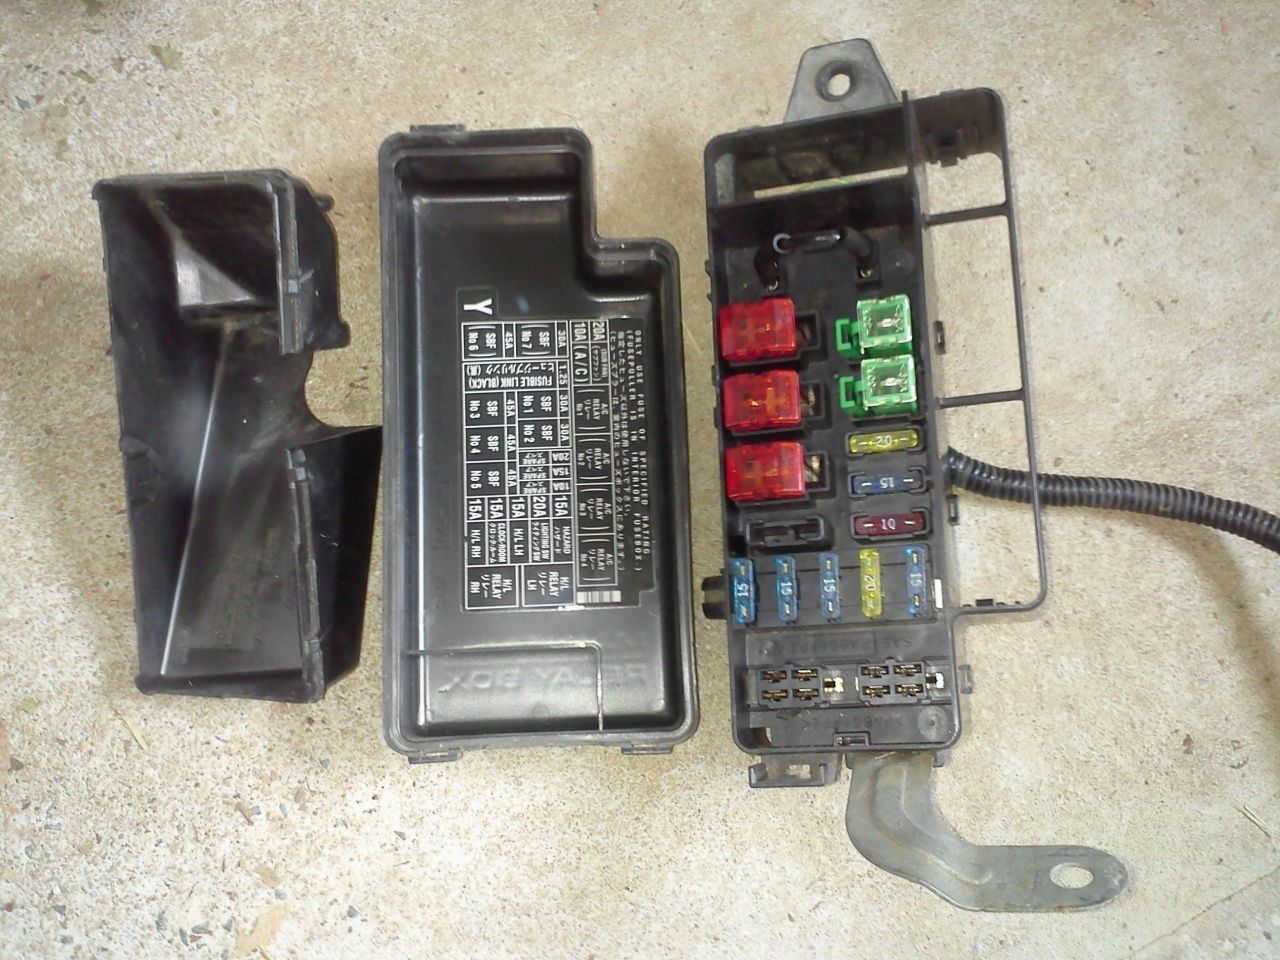 Subaru Legacy 95 99 Fuse Box With Covers & And 16 Similar Items 1999 Subaru  Outback Fuse Diagram 95 Subaru Fuse Box